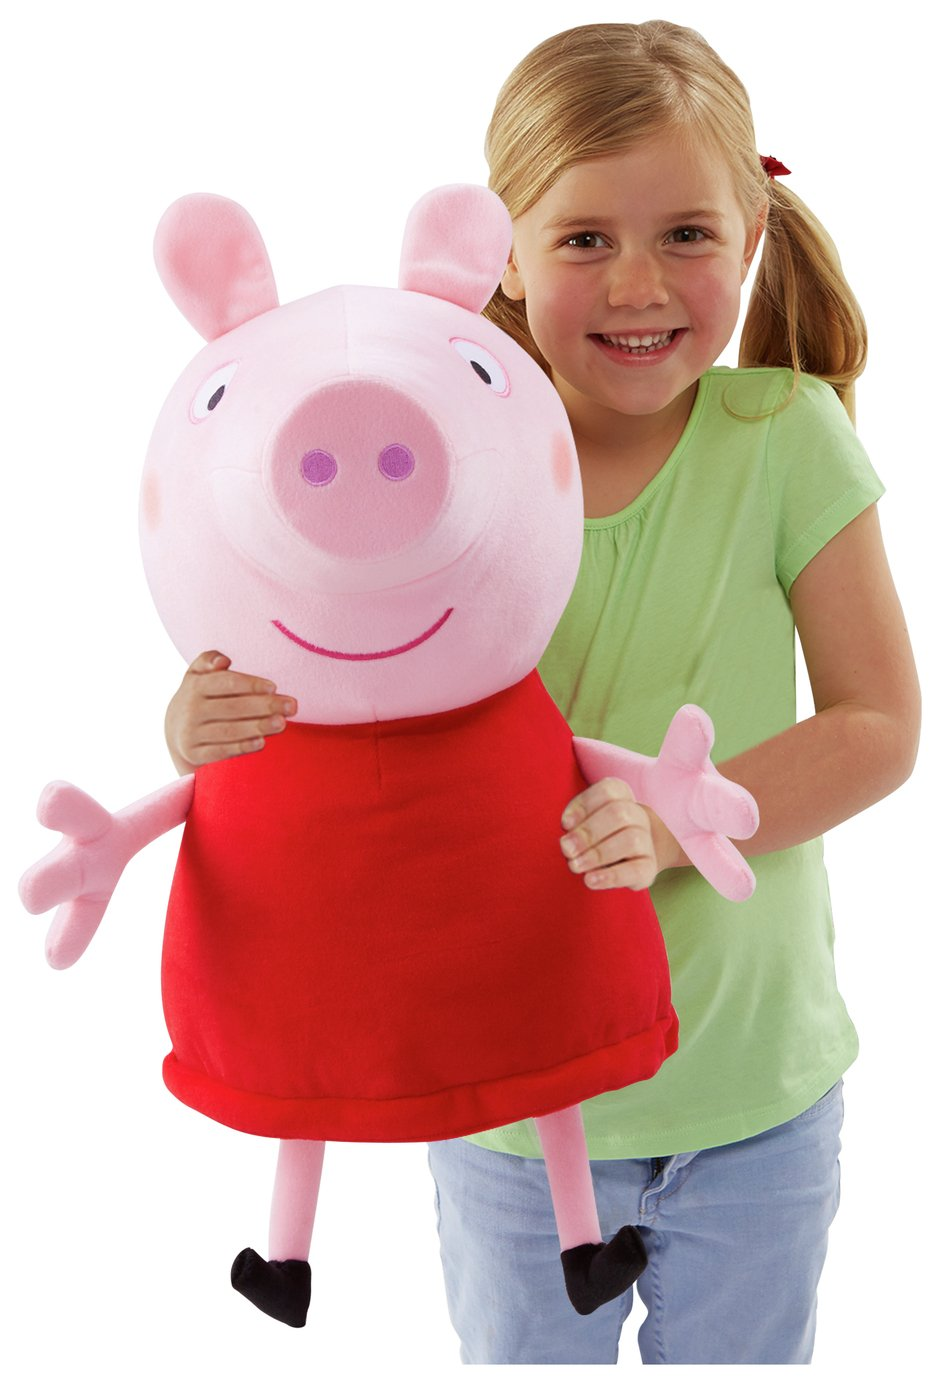 Peppa Pig Giant Talking Peppa Soft Toy from Peppa pig